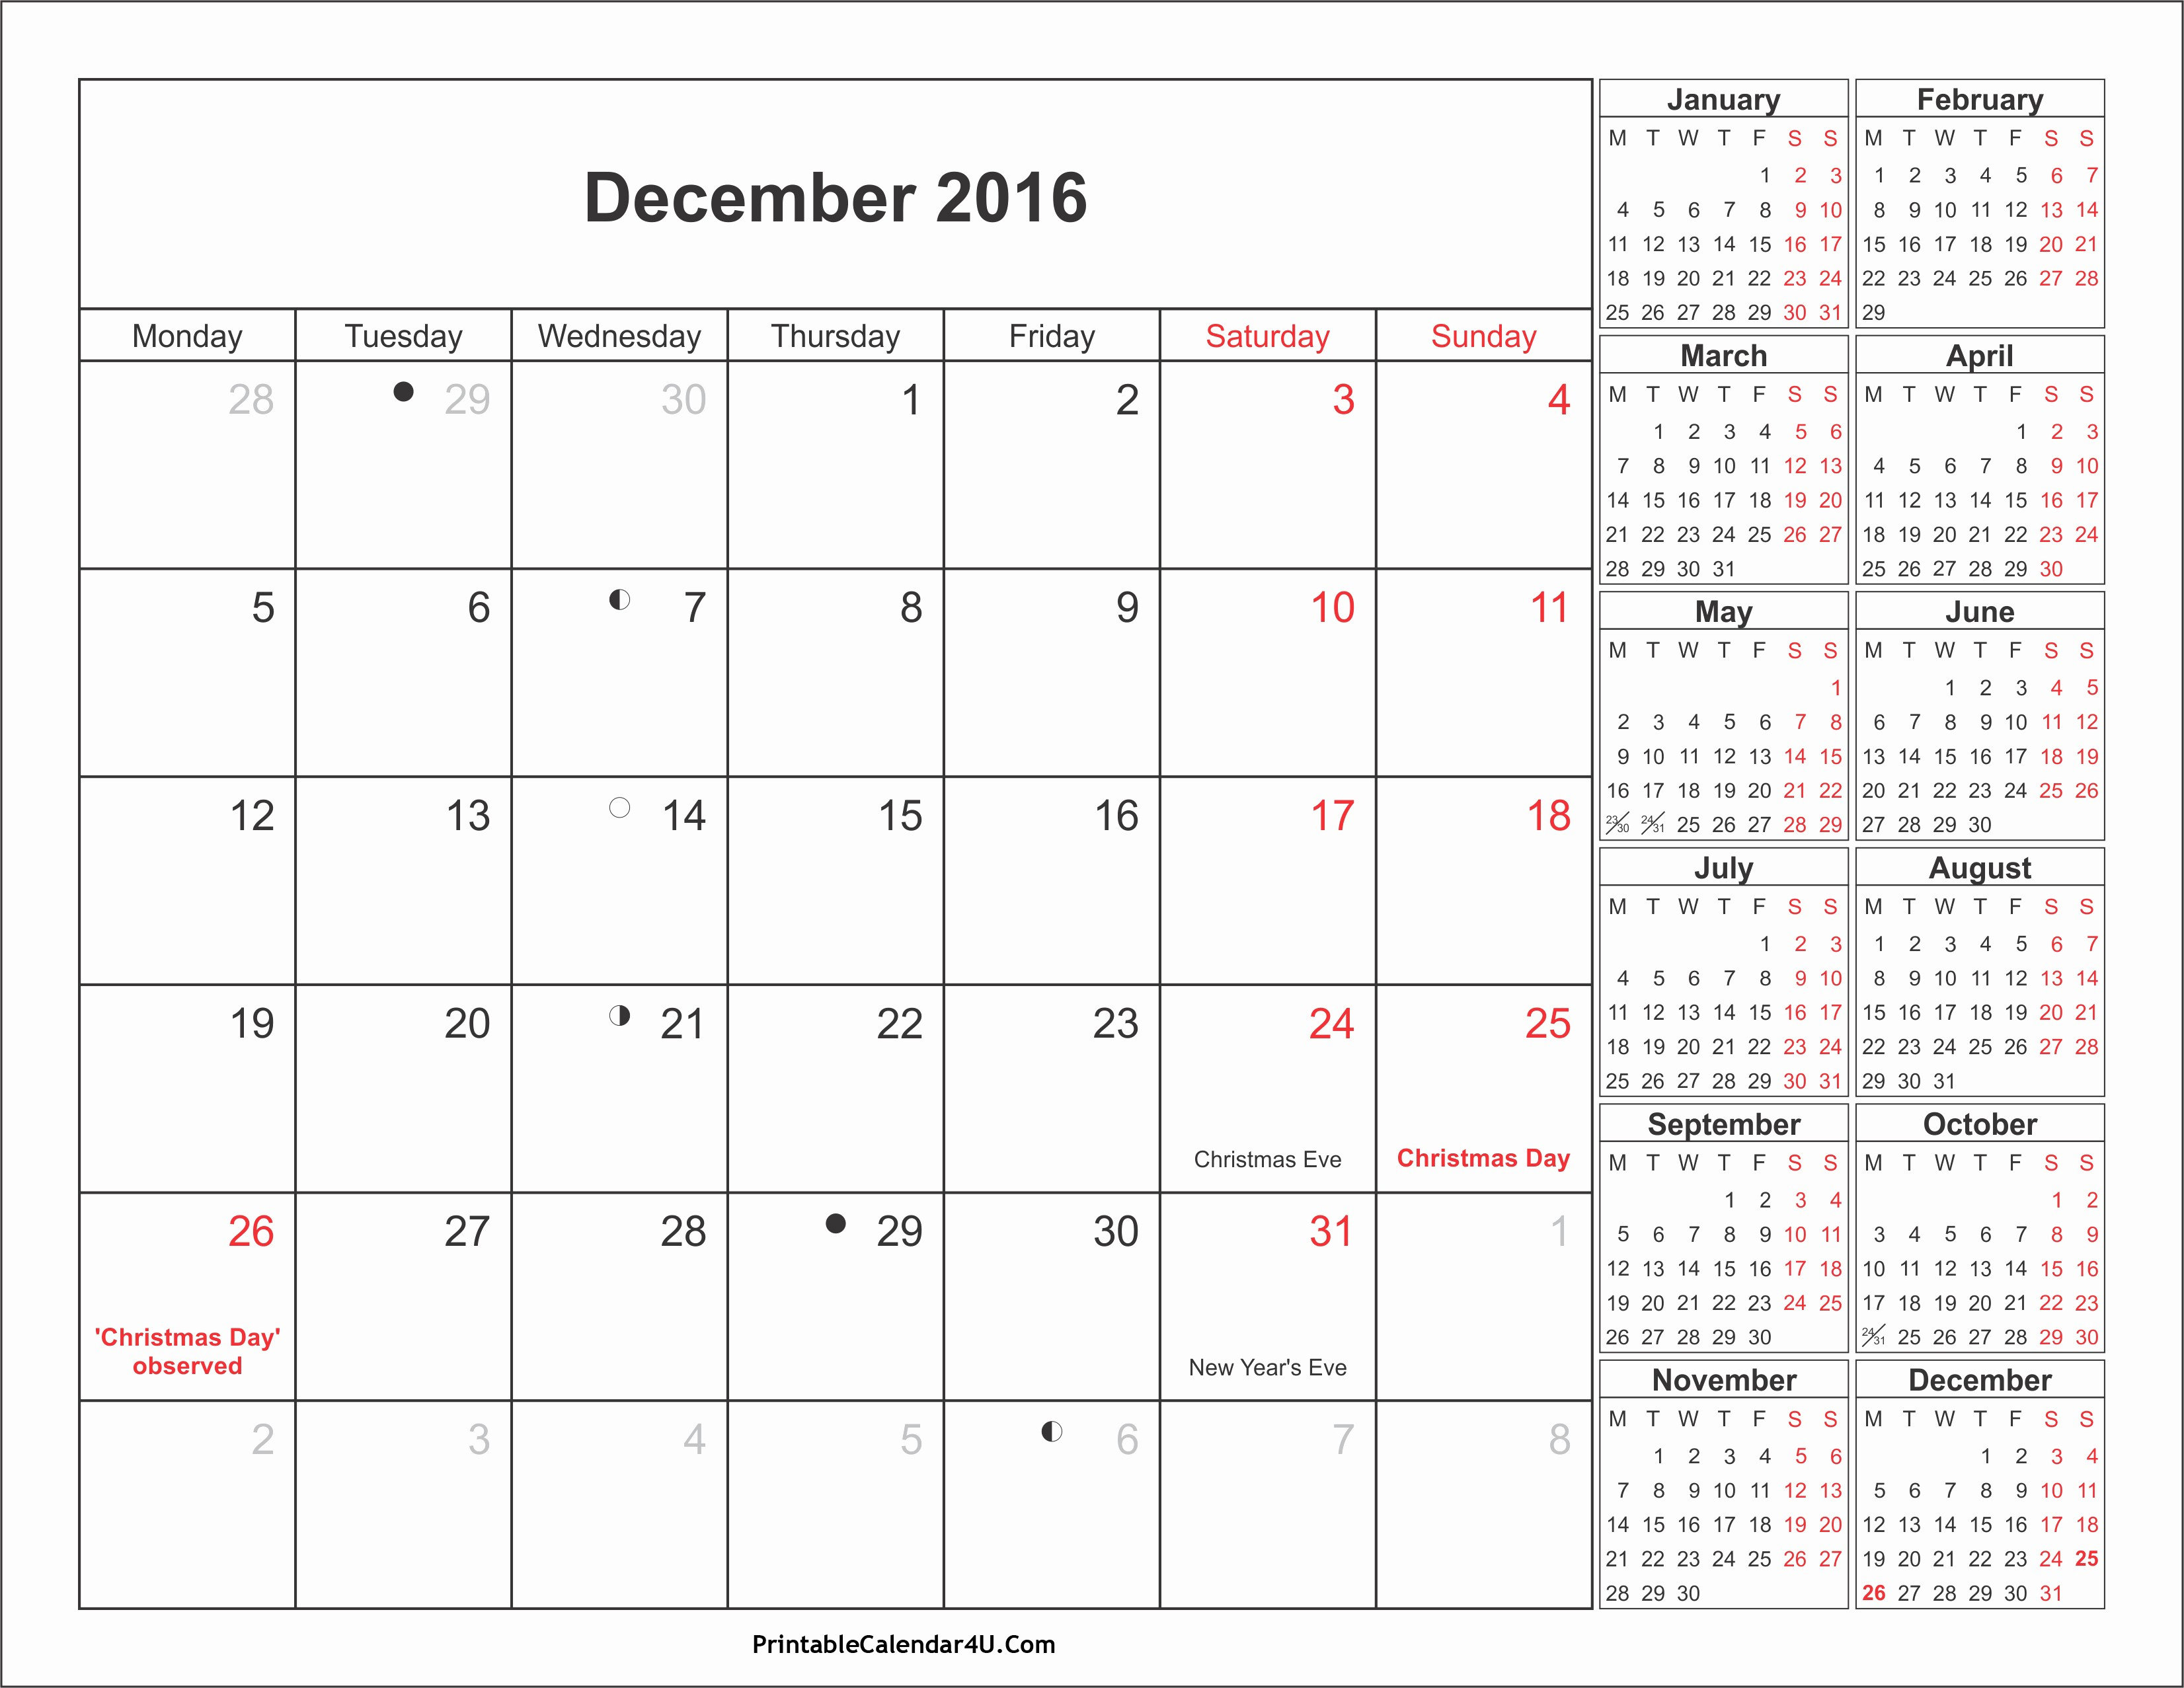 Printable 2016 Calendars with Holidays Best Of December 2016 Calendar Printable with Holidays Pdf and Jpg